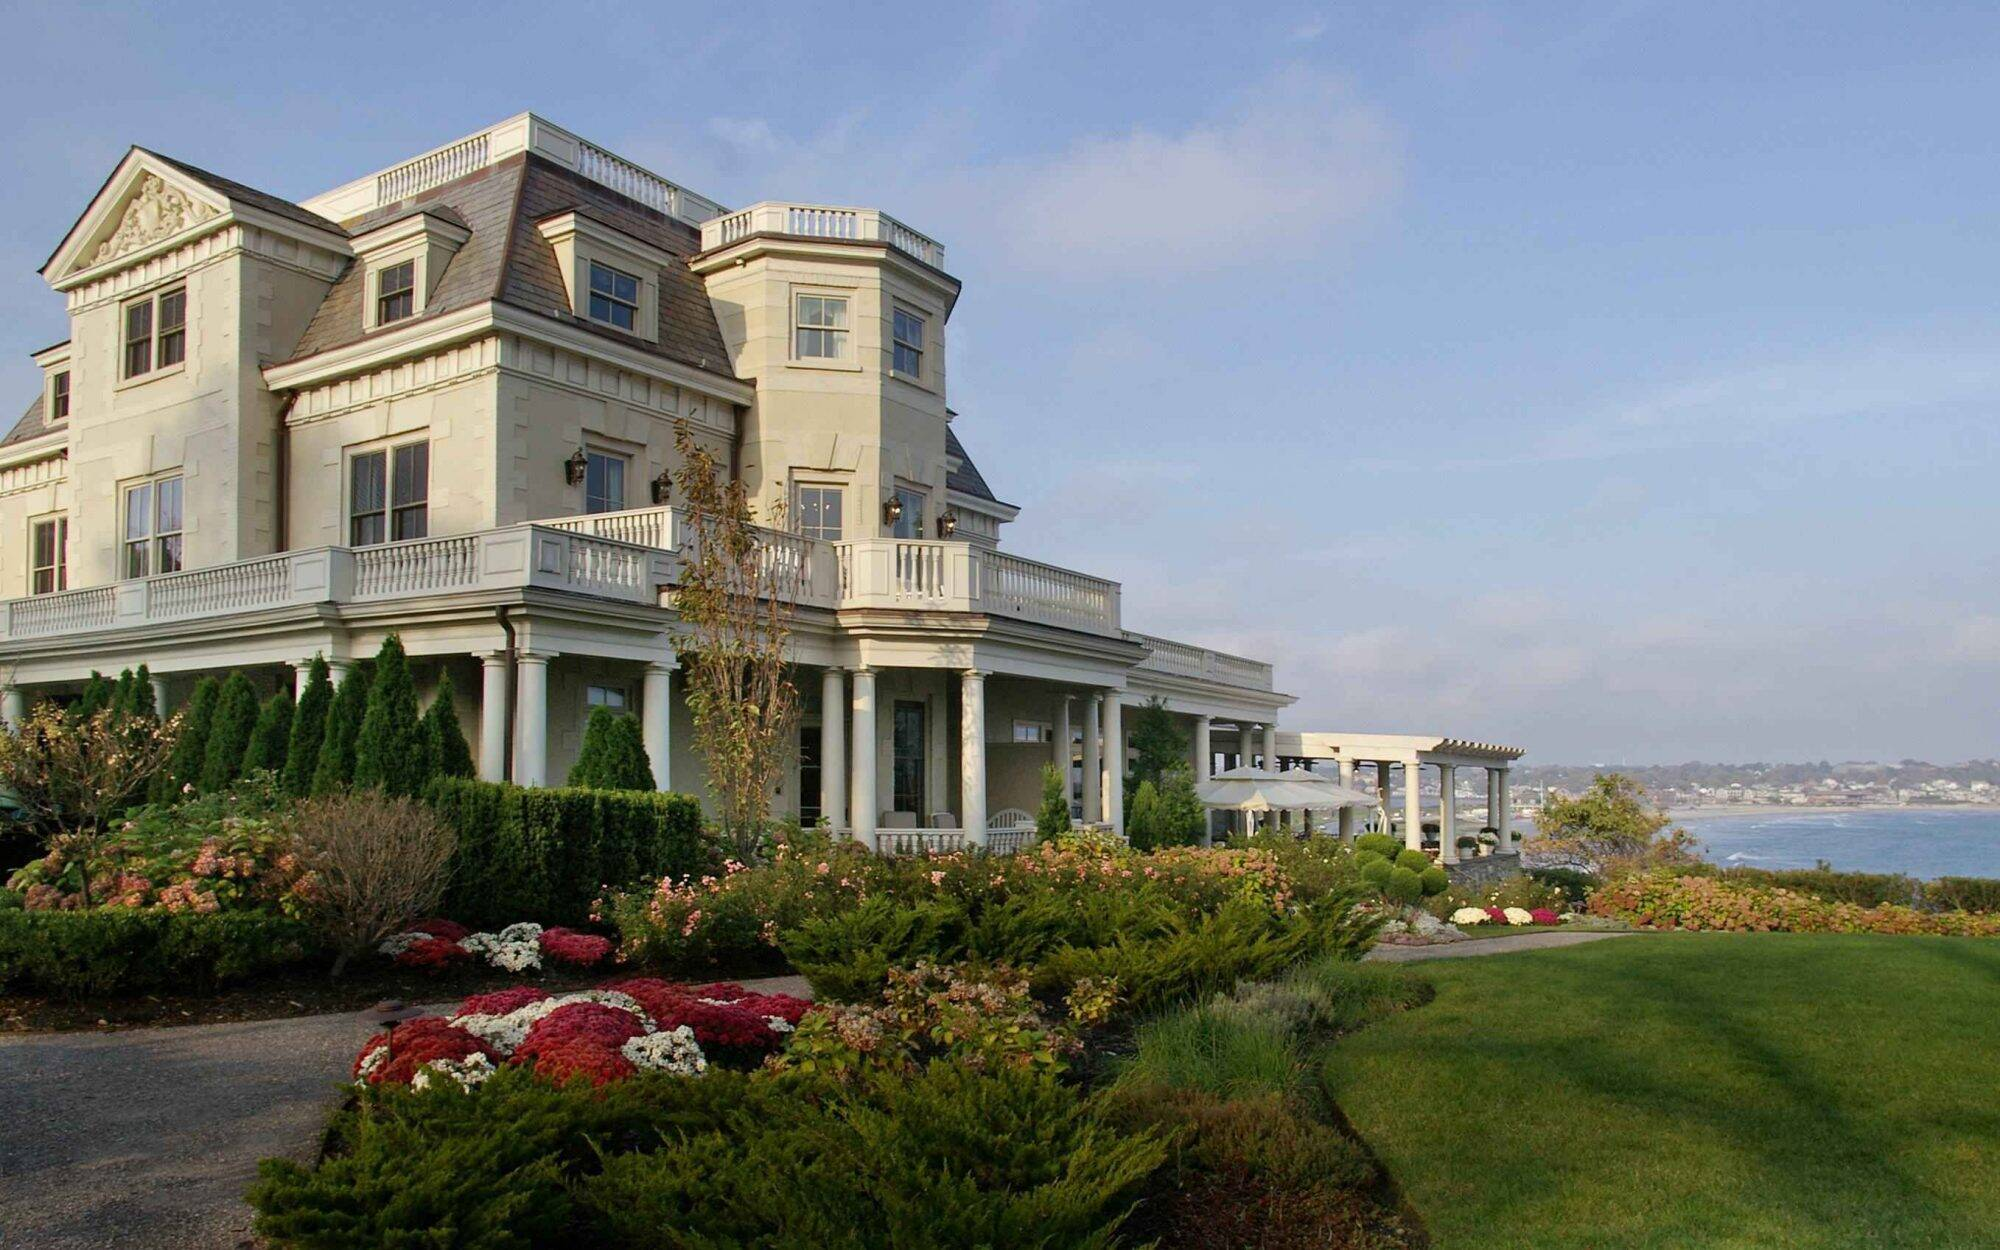 New England Is Famed For Its Charming Historic Inns And The Chanler At Cliff